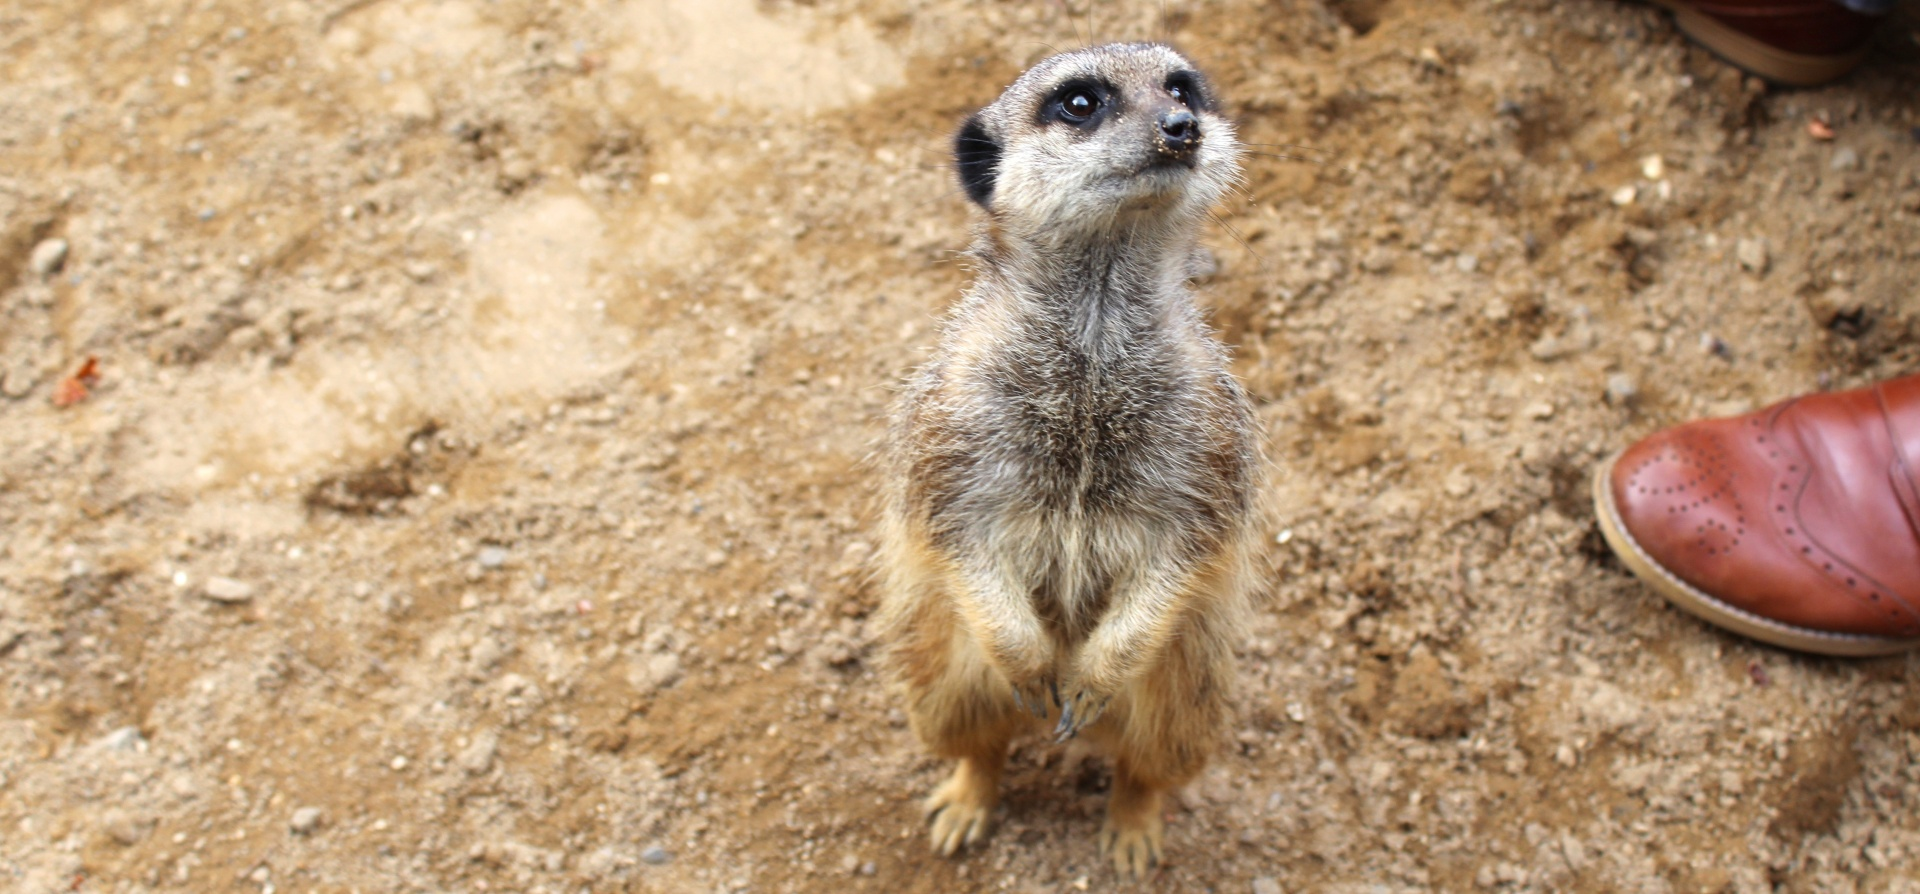 30 Minute Meerkat Experience - Oxfordshire-4